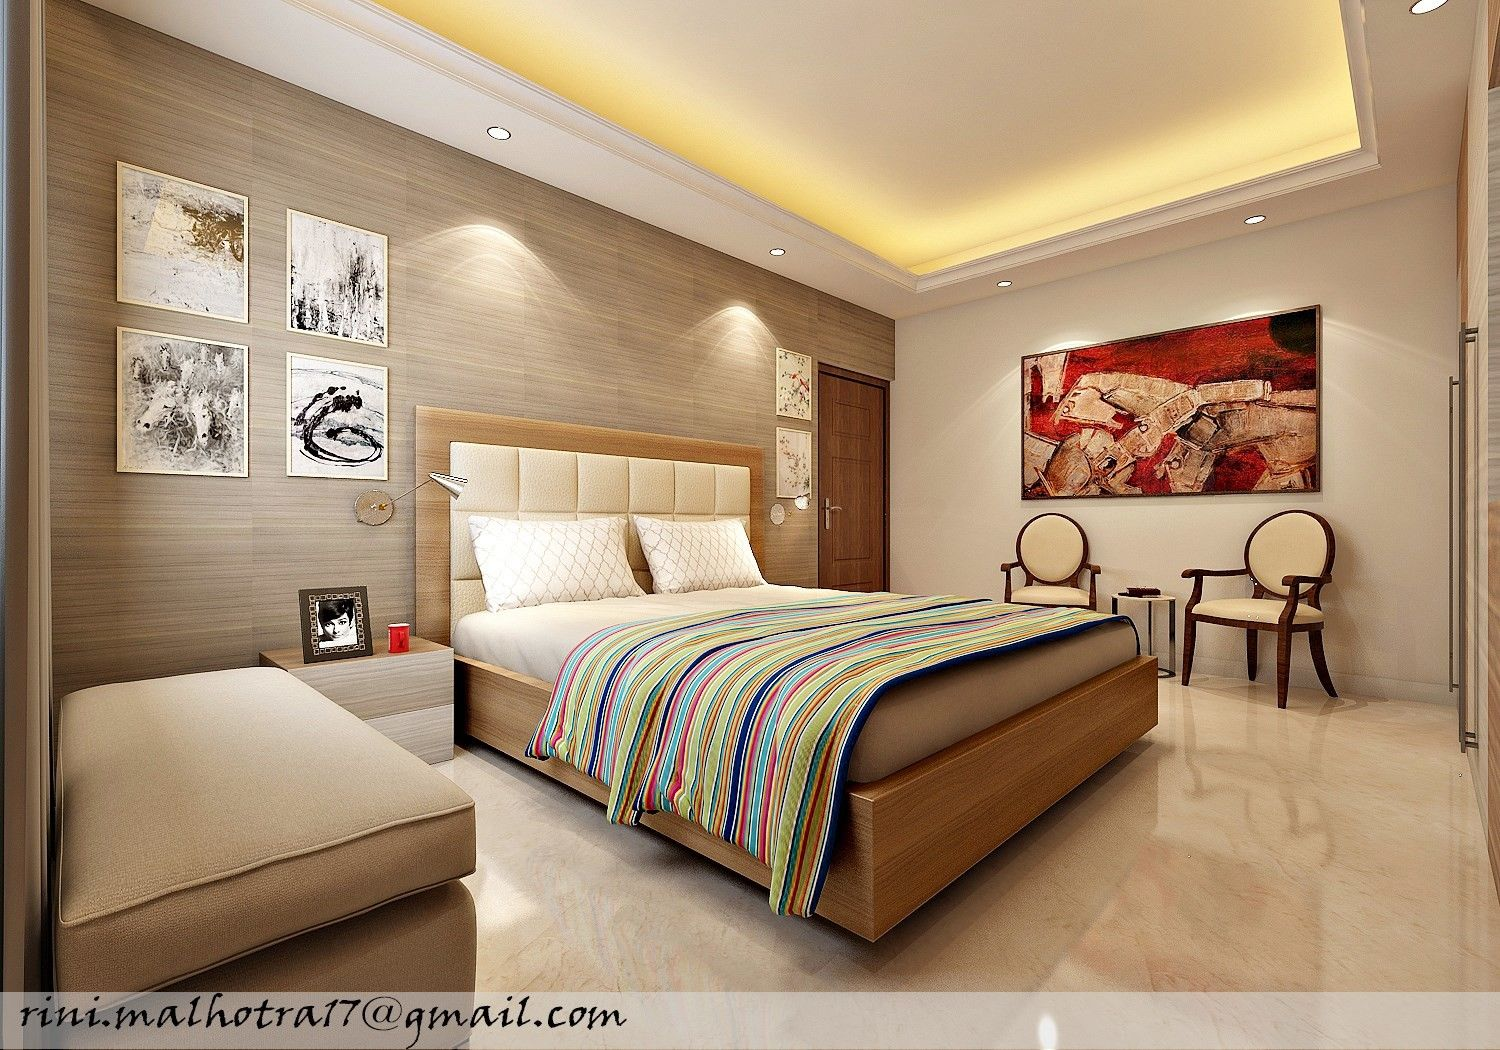 the classic bed room interior view wooden bed with comfortable